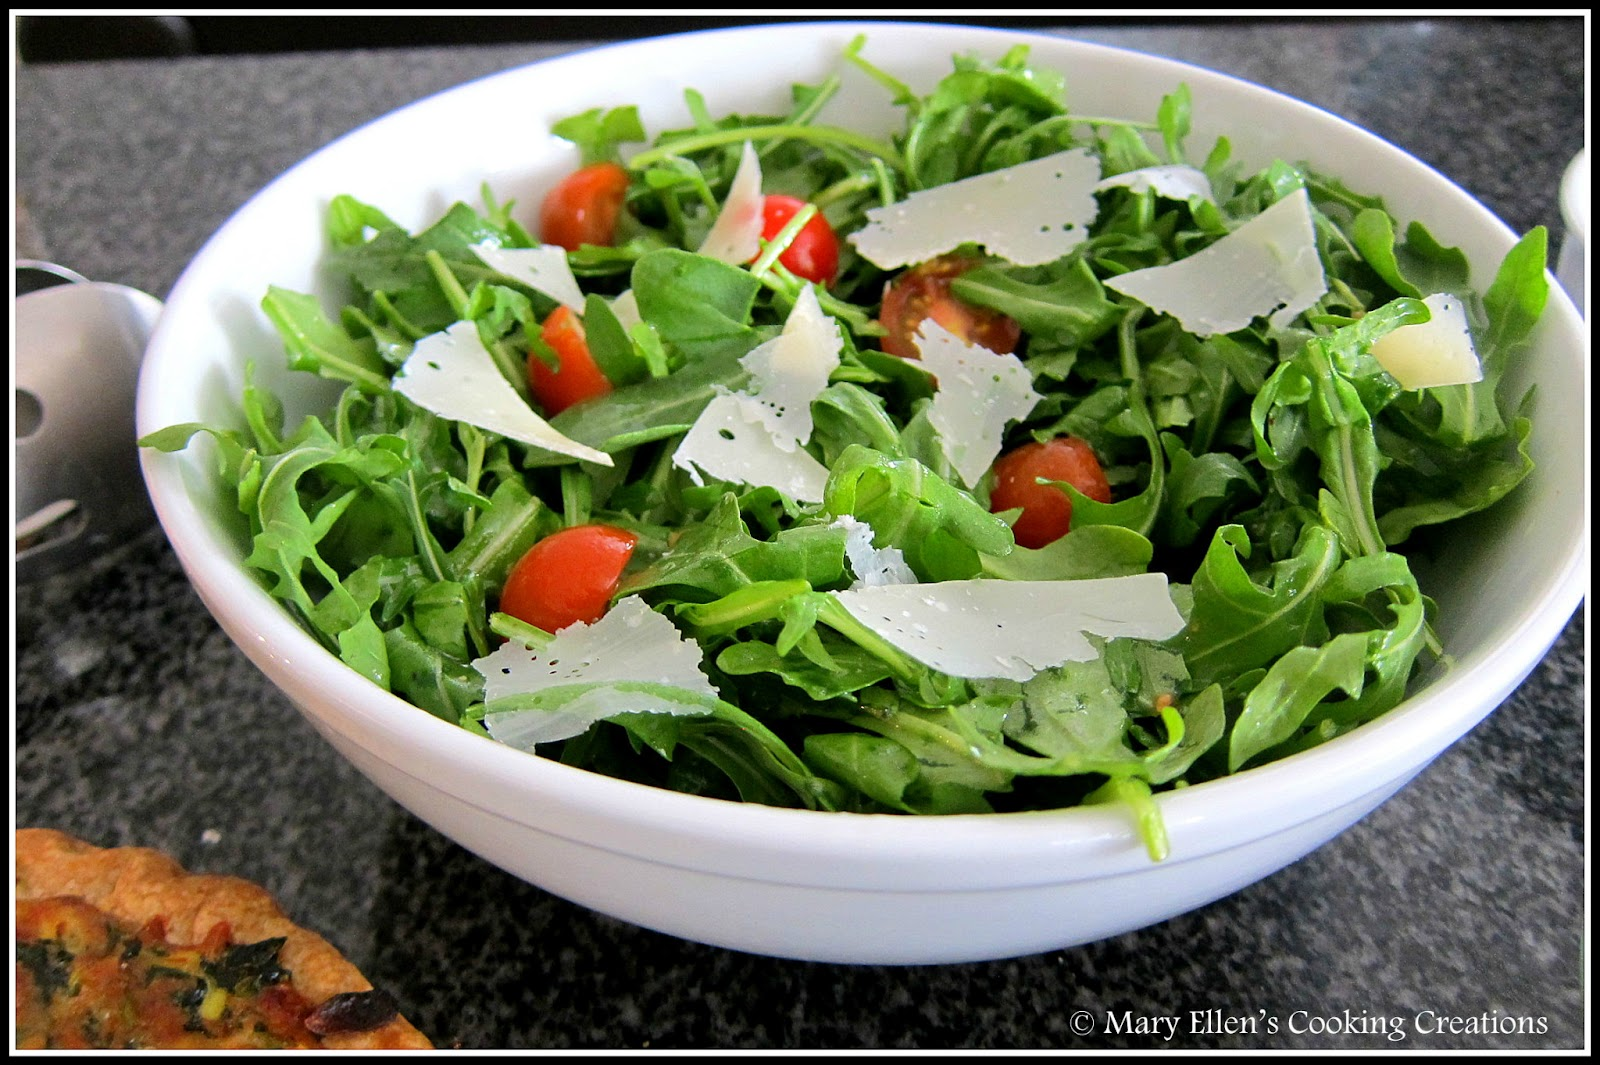 Mary Ellen's Cooking Creations: Arugula Salad with Lemon ...